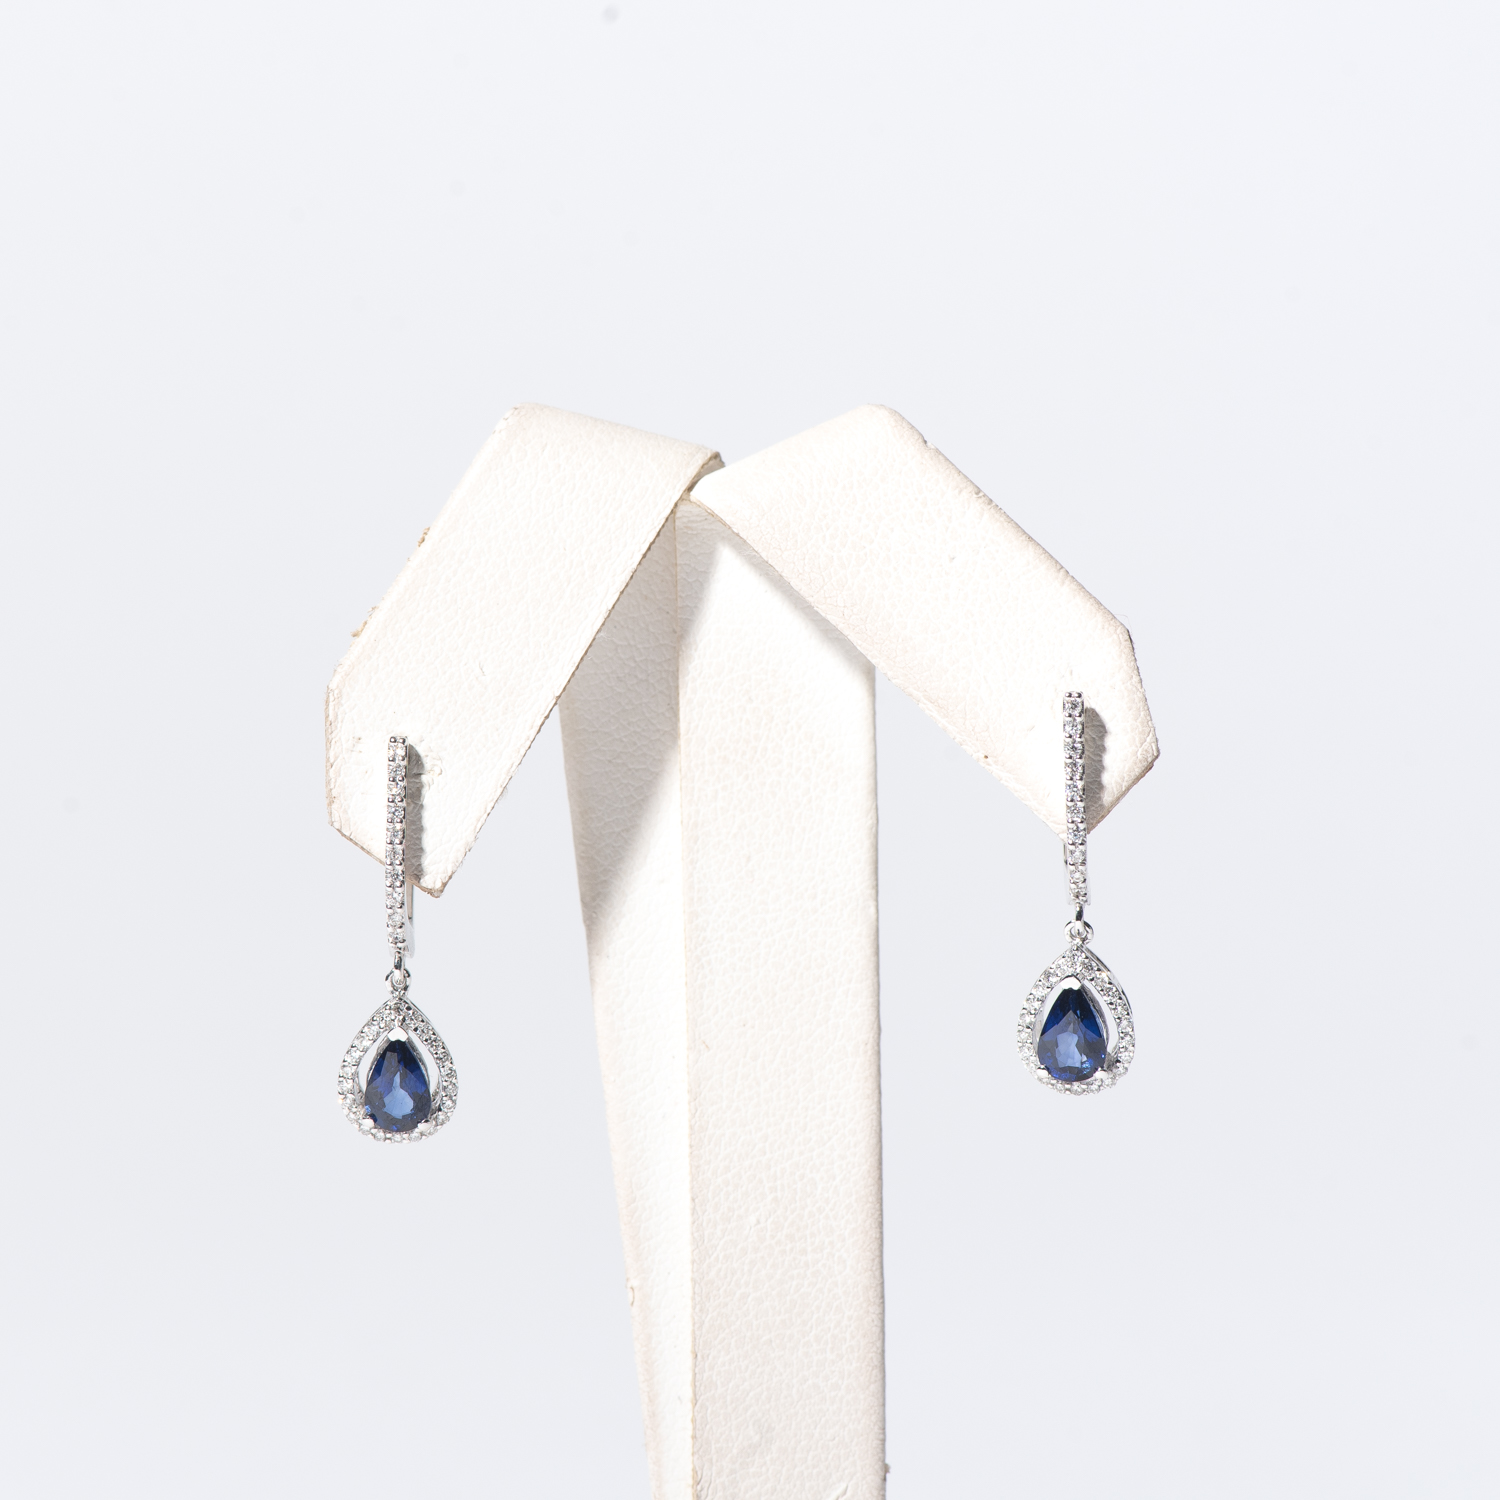 Design Eighteen. - This is dummy text to describe the earrings.